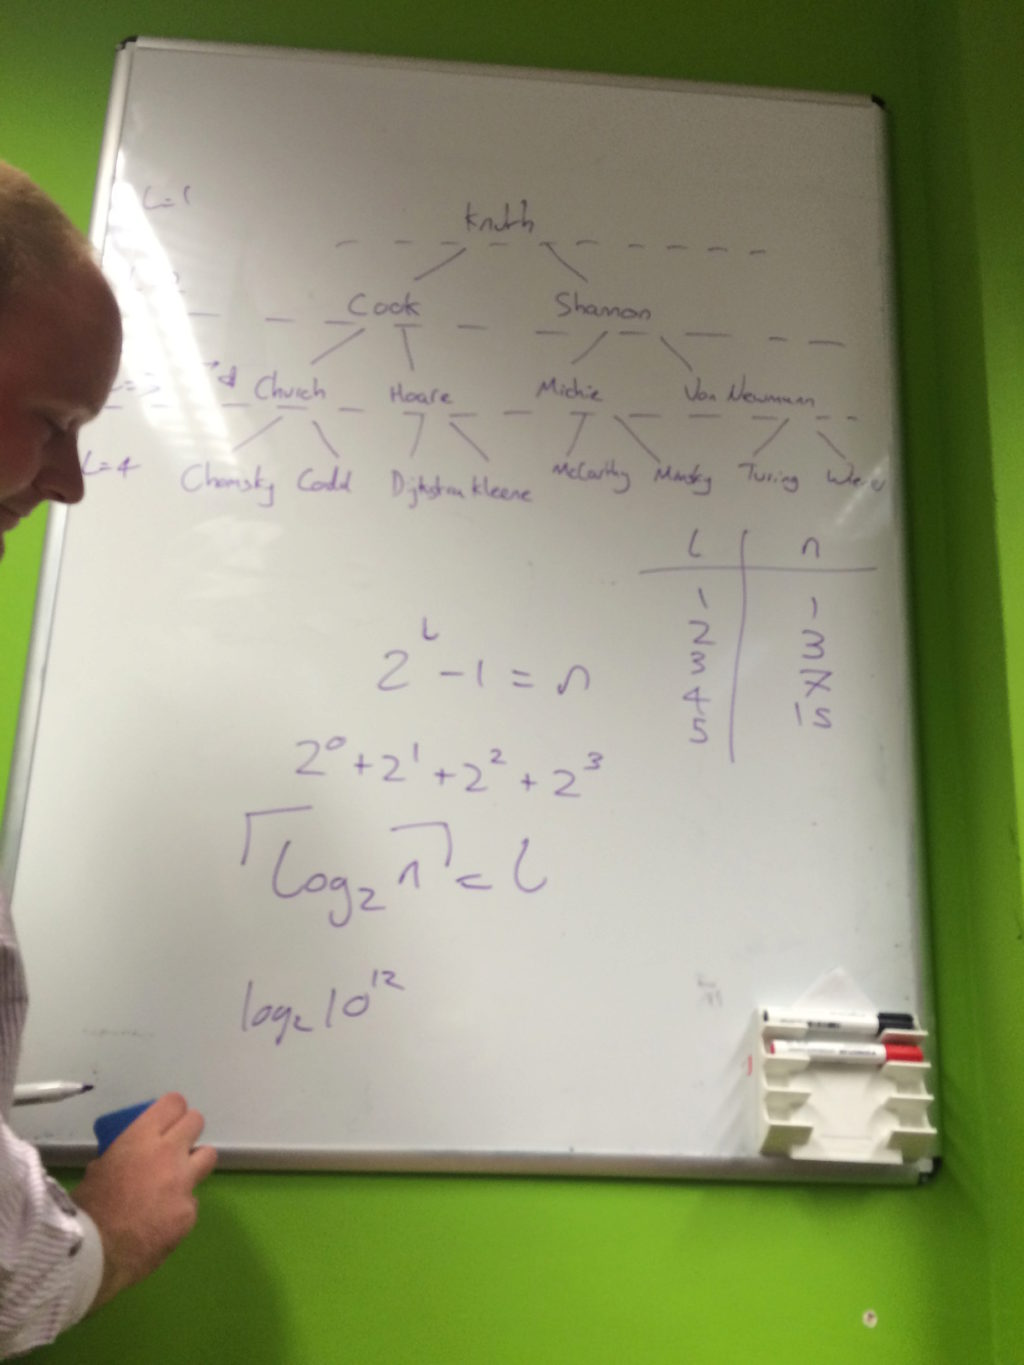 Chris working through complexity